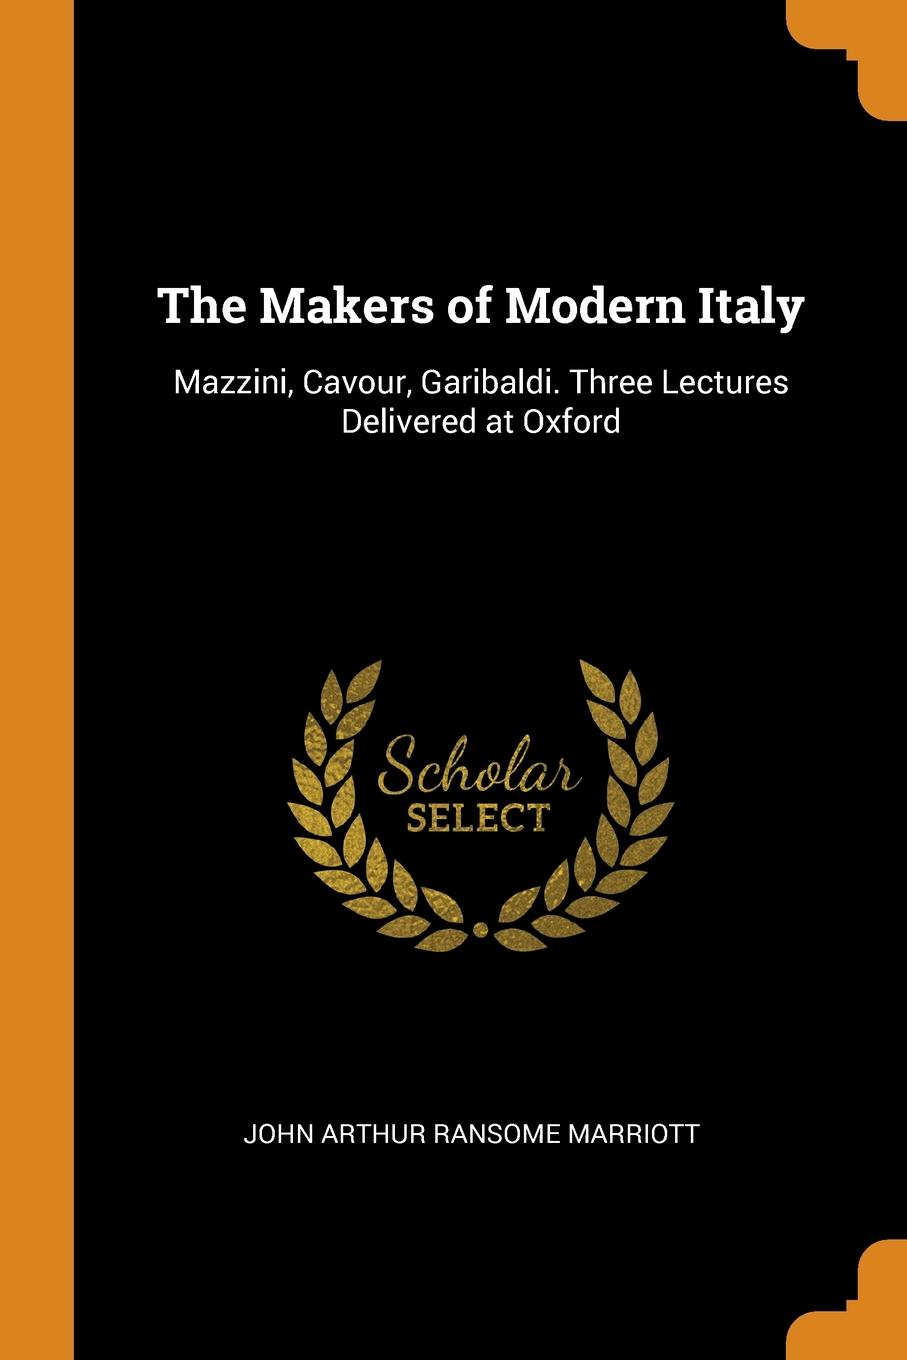 The Makers of Modern Italy. Mazzini, Cavour, Garibaldi. Three Lectures Delivered at Oxford